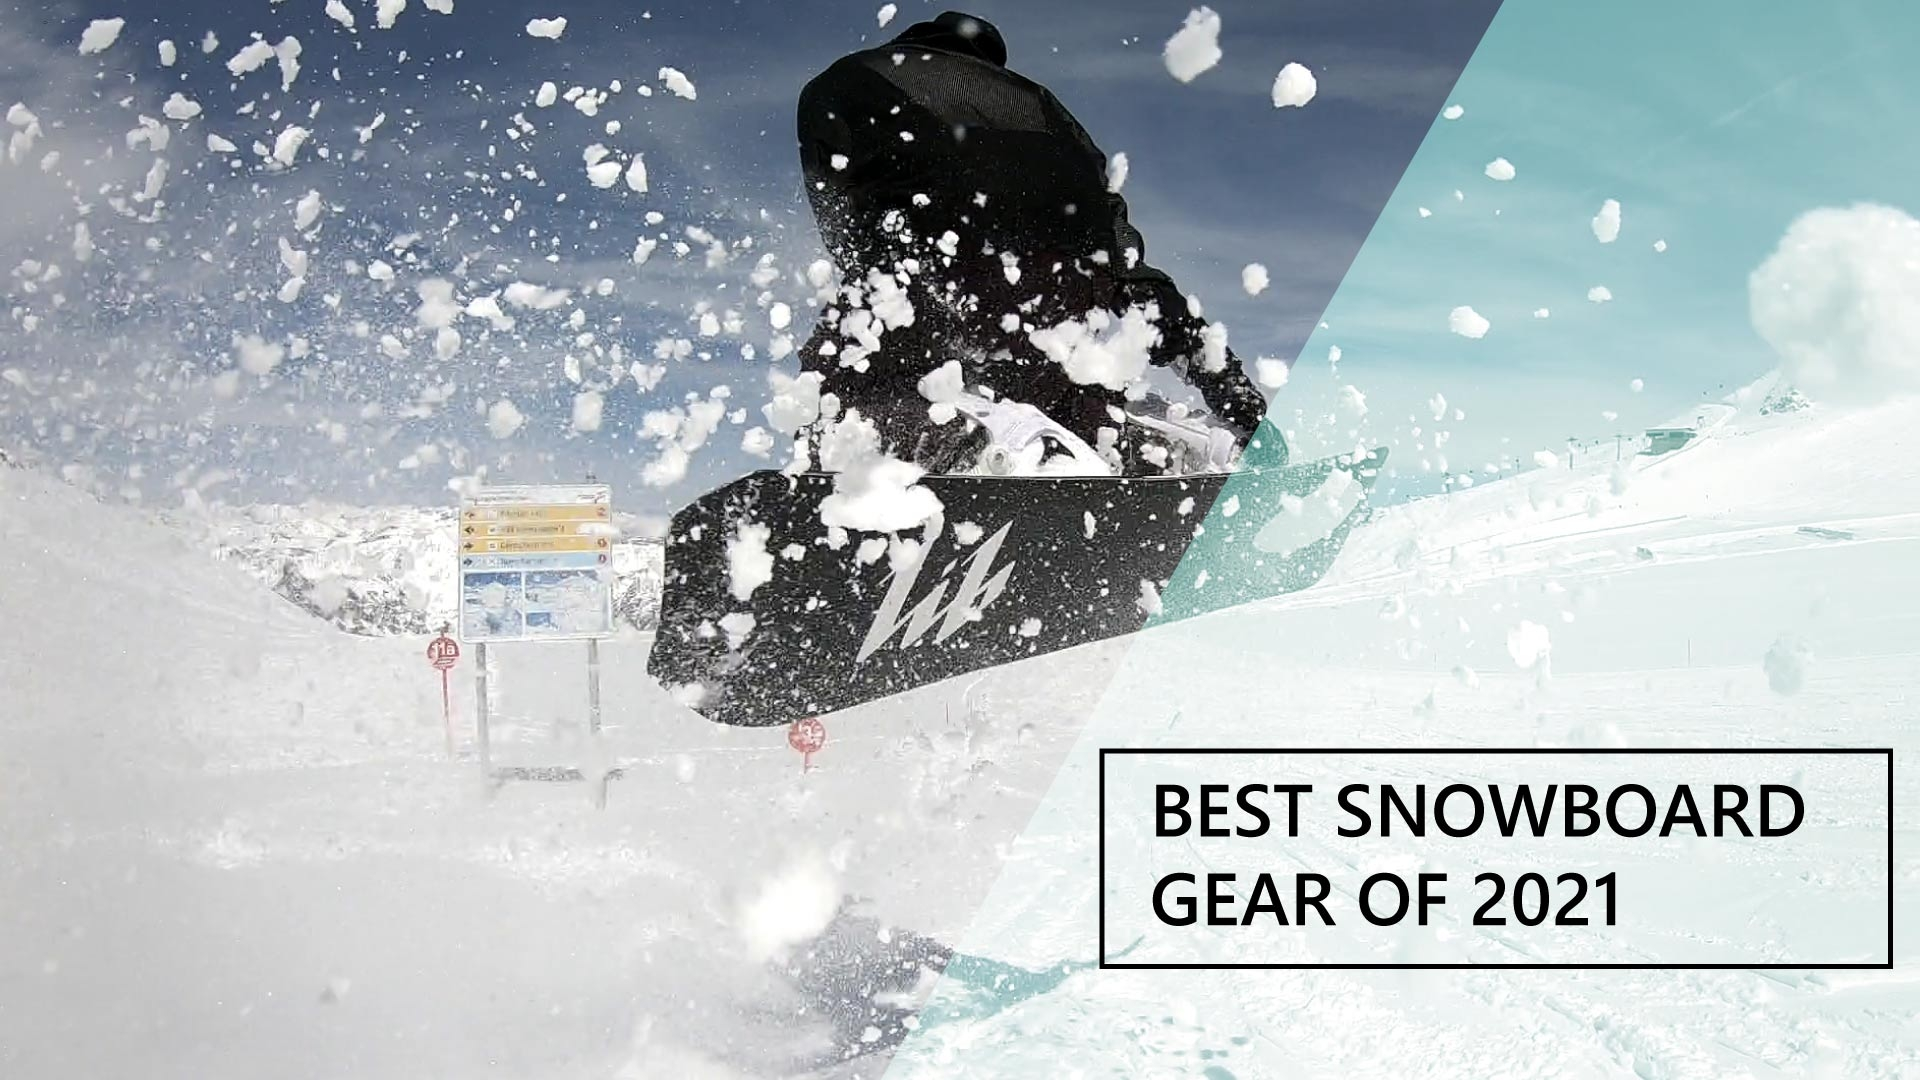 Best Snowboard Gear of 2021